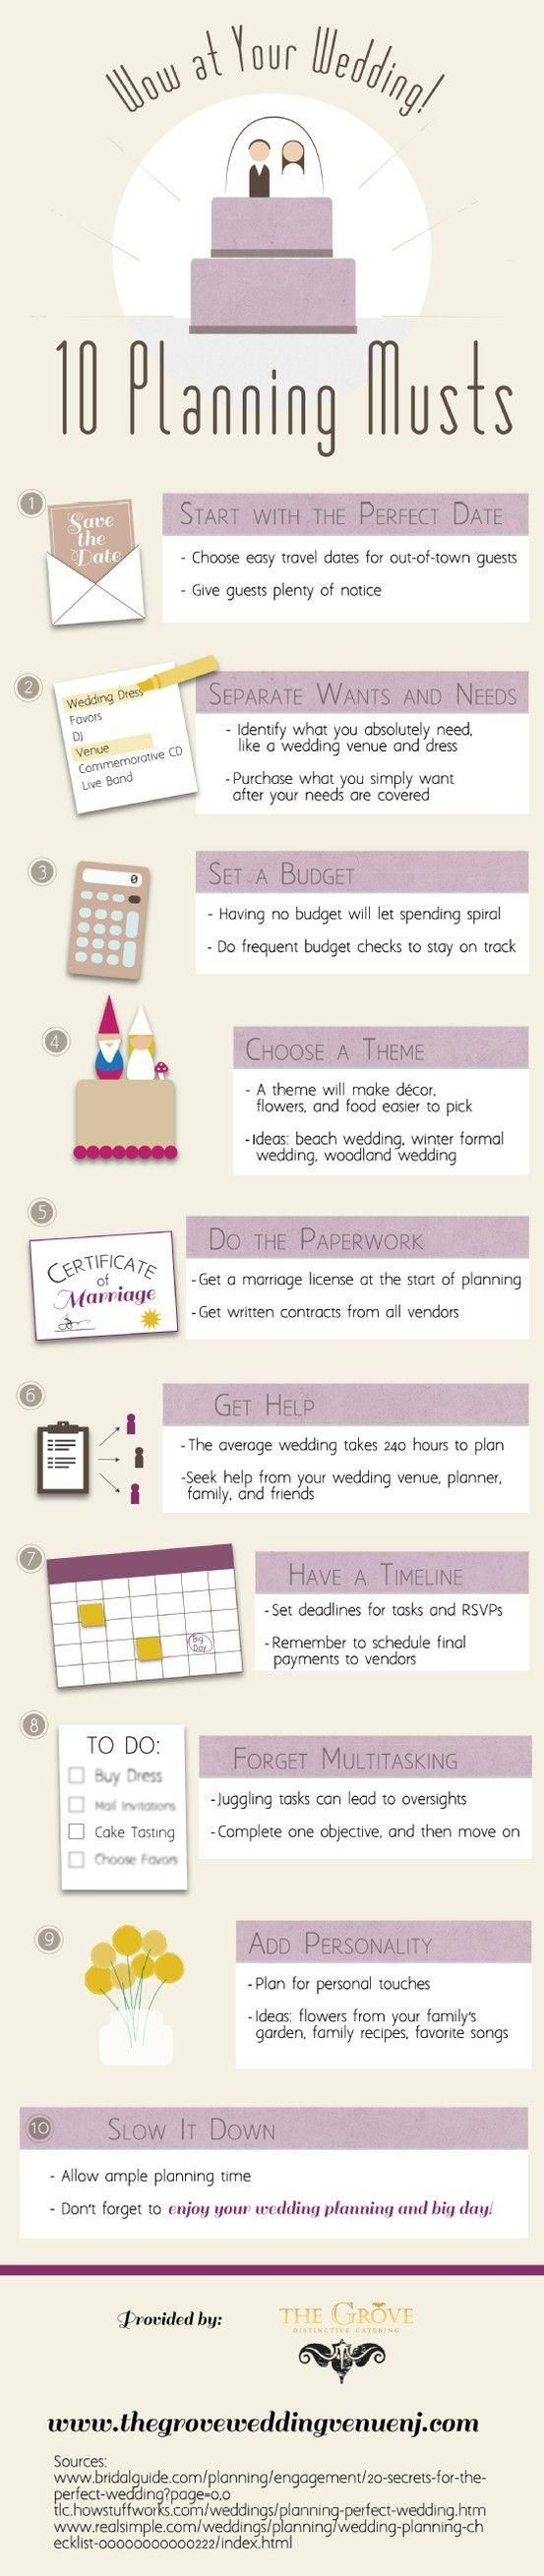 best wedding planning advice from the pros tips and trix